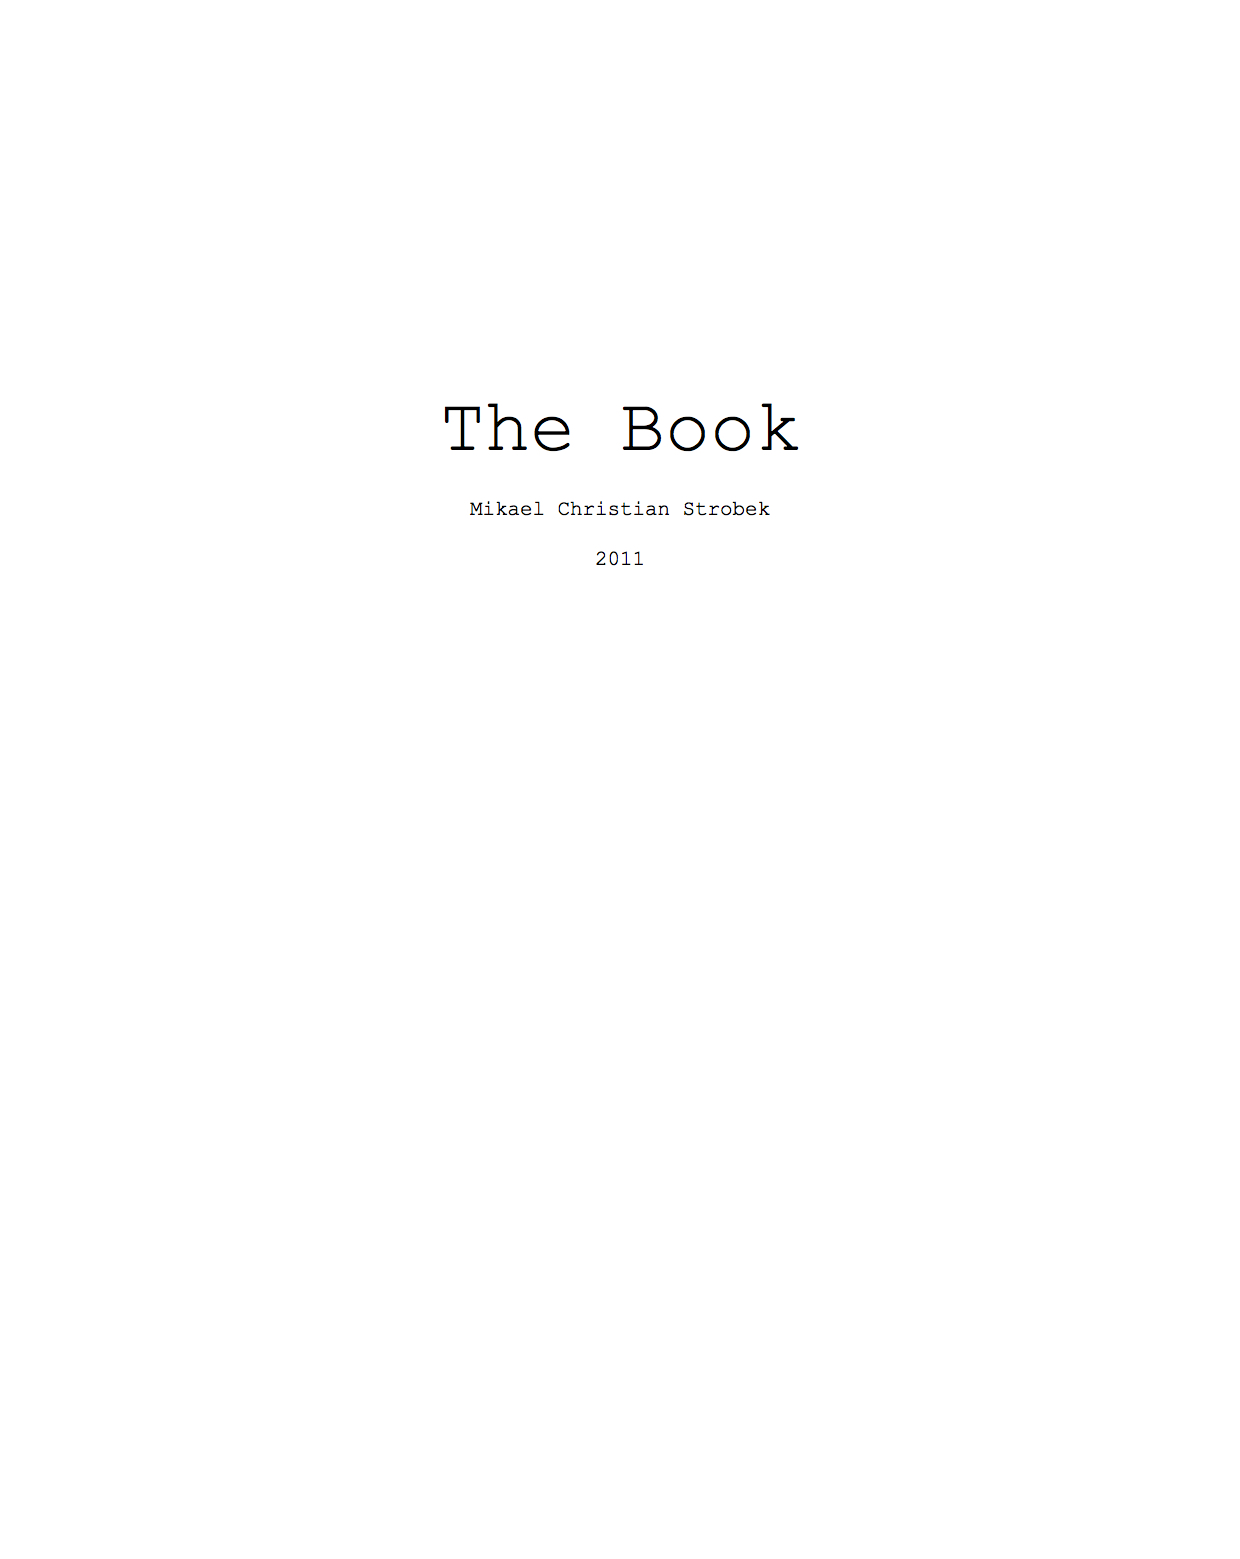 The Book. 2011